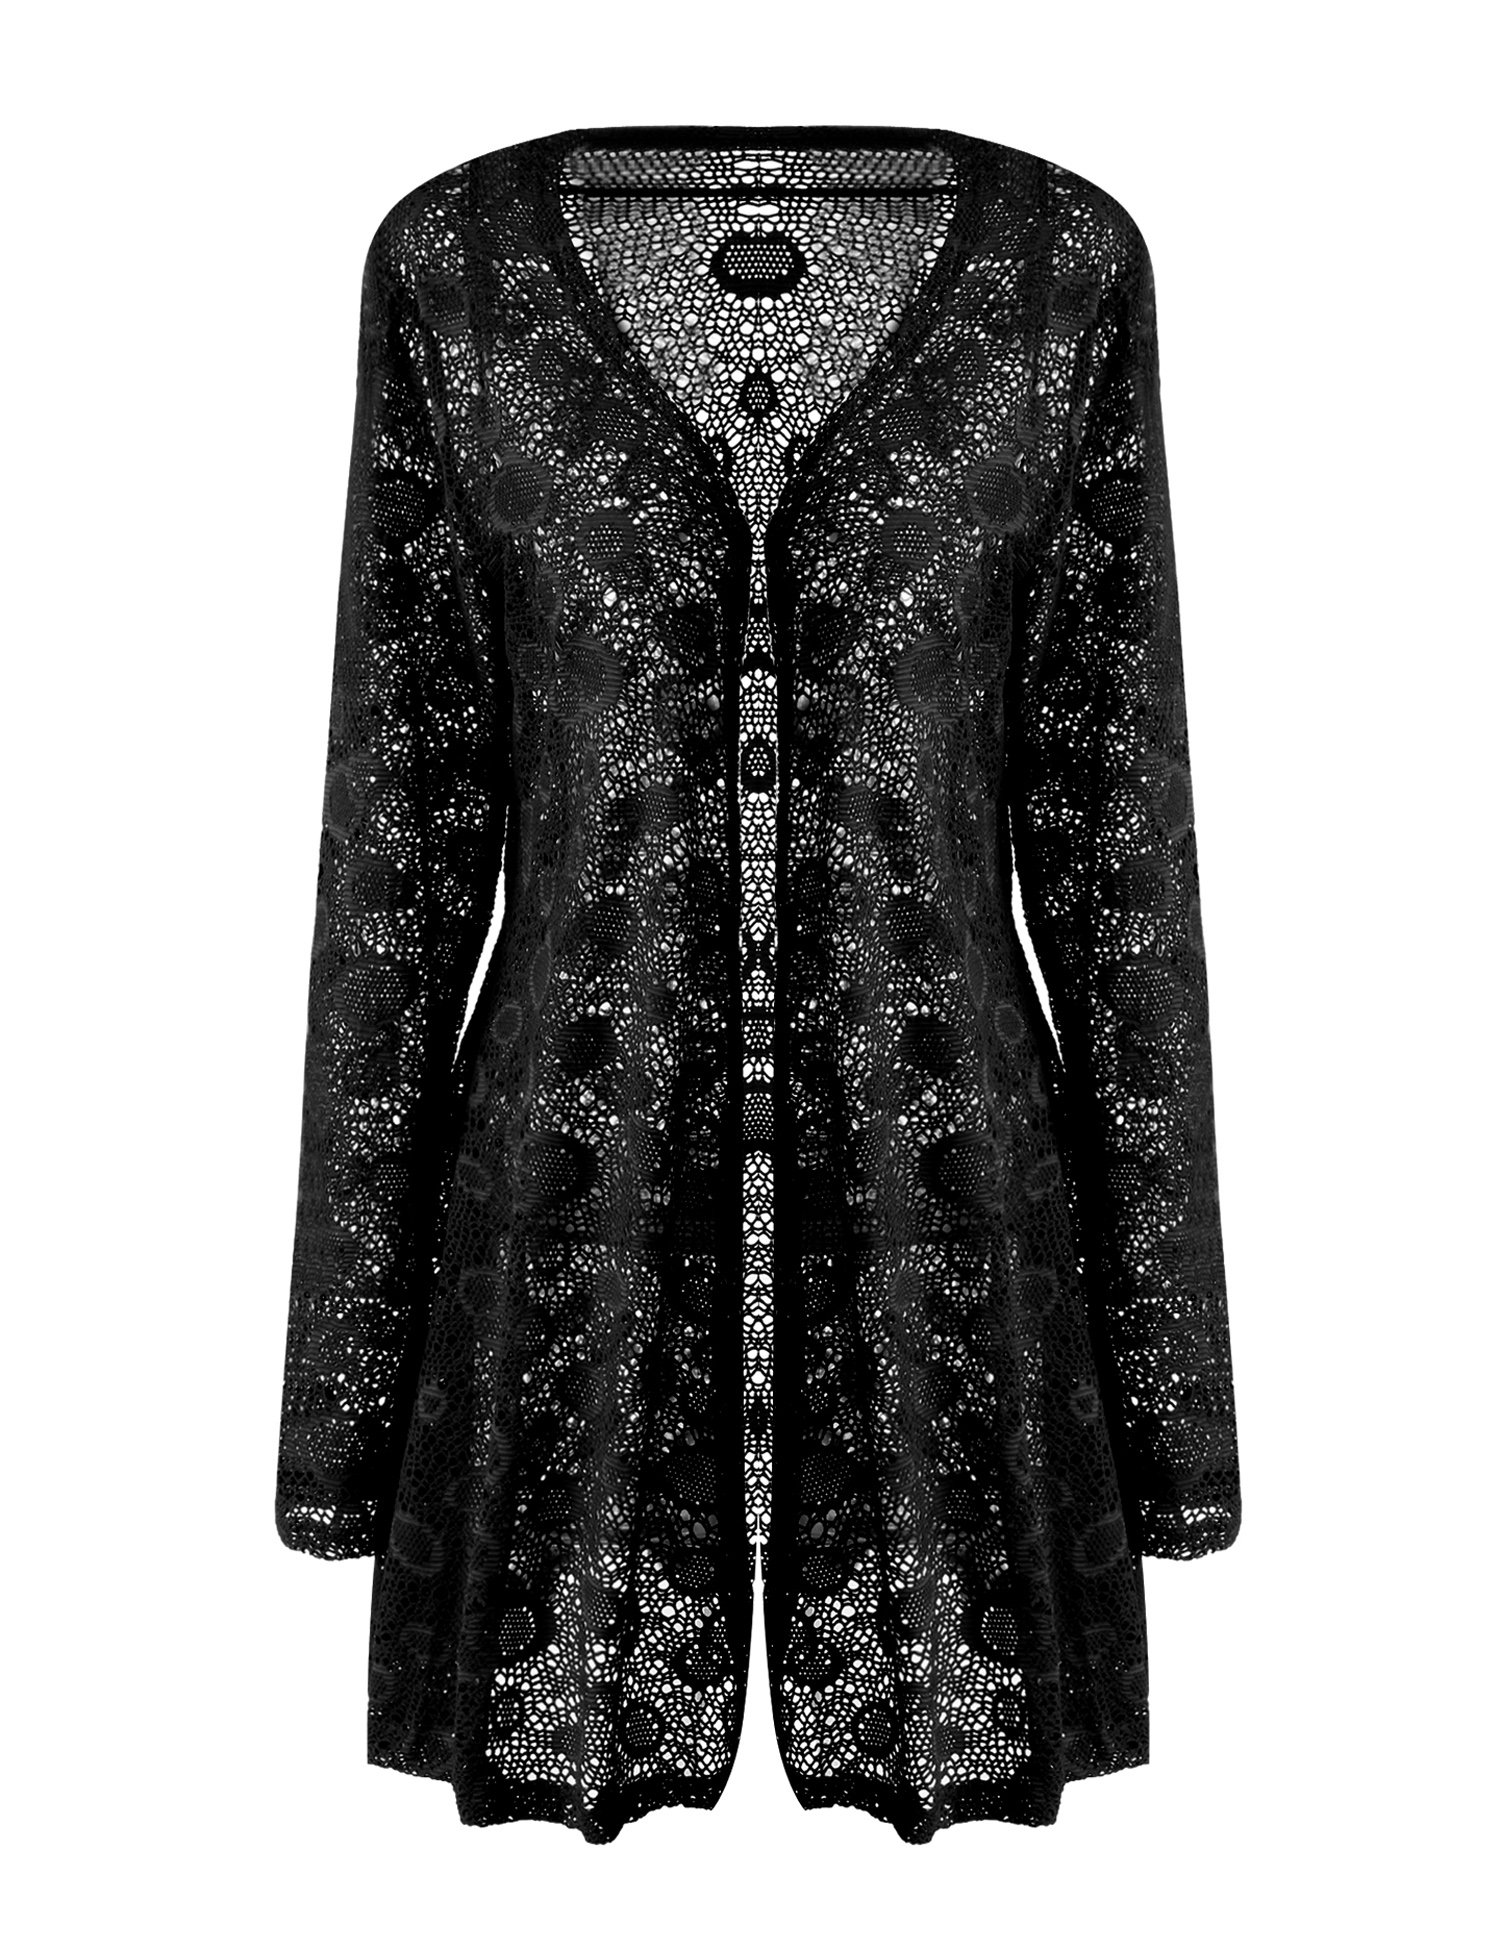 Meaneor Women's Sexy Lace Crochet Sheer Long Sleeve Open Front Cardigan Coat Style-1 Black XL